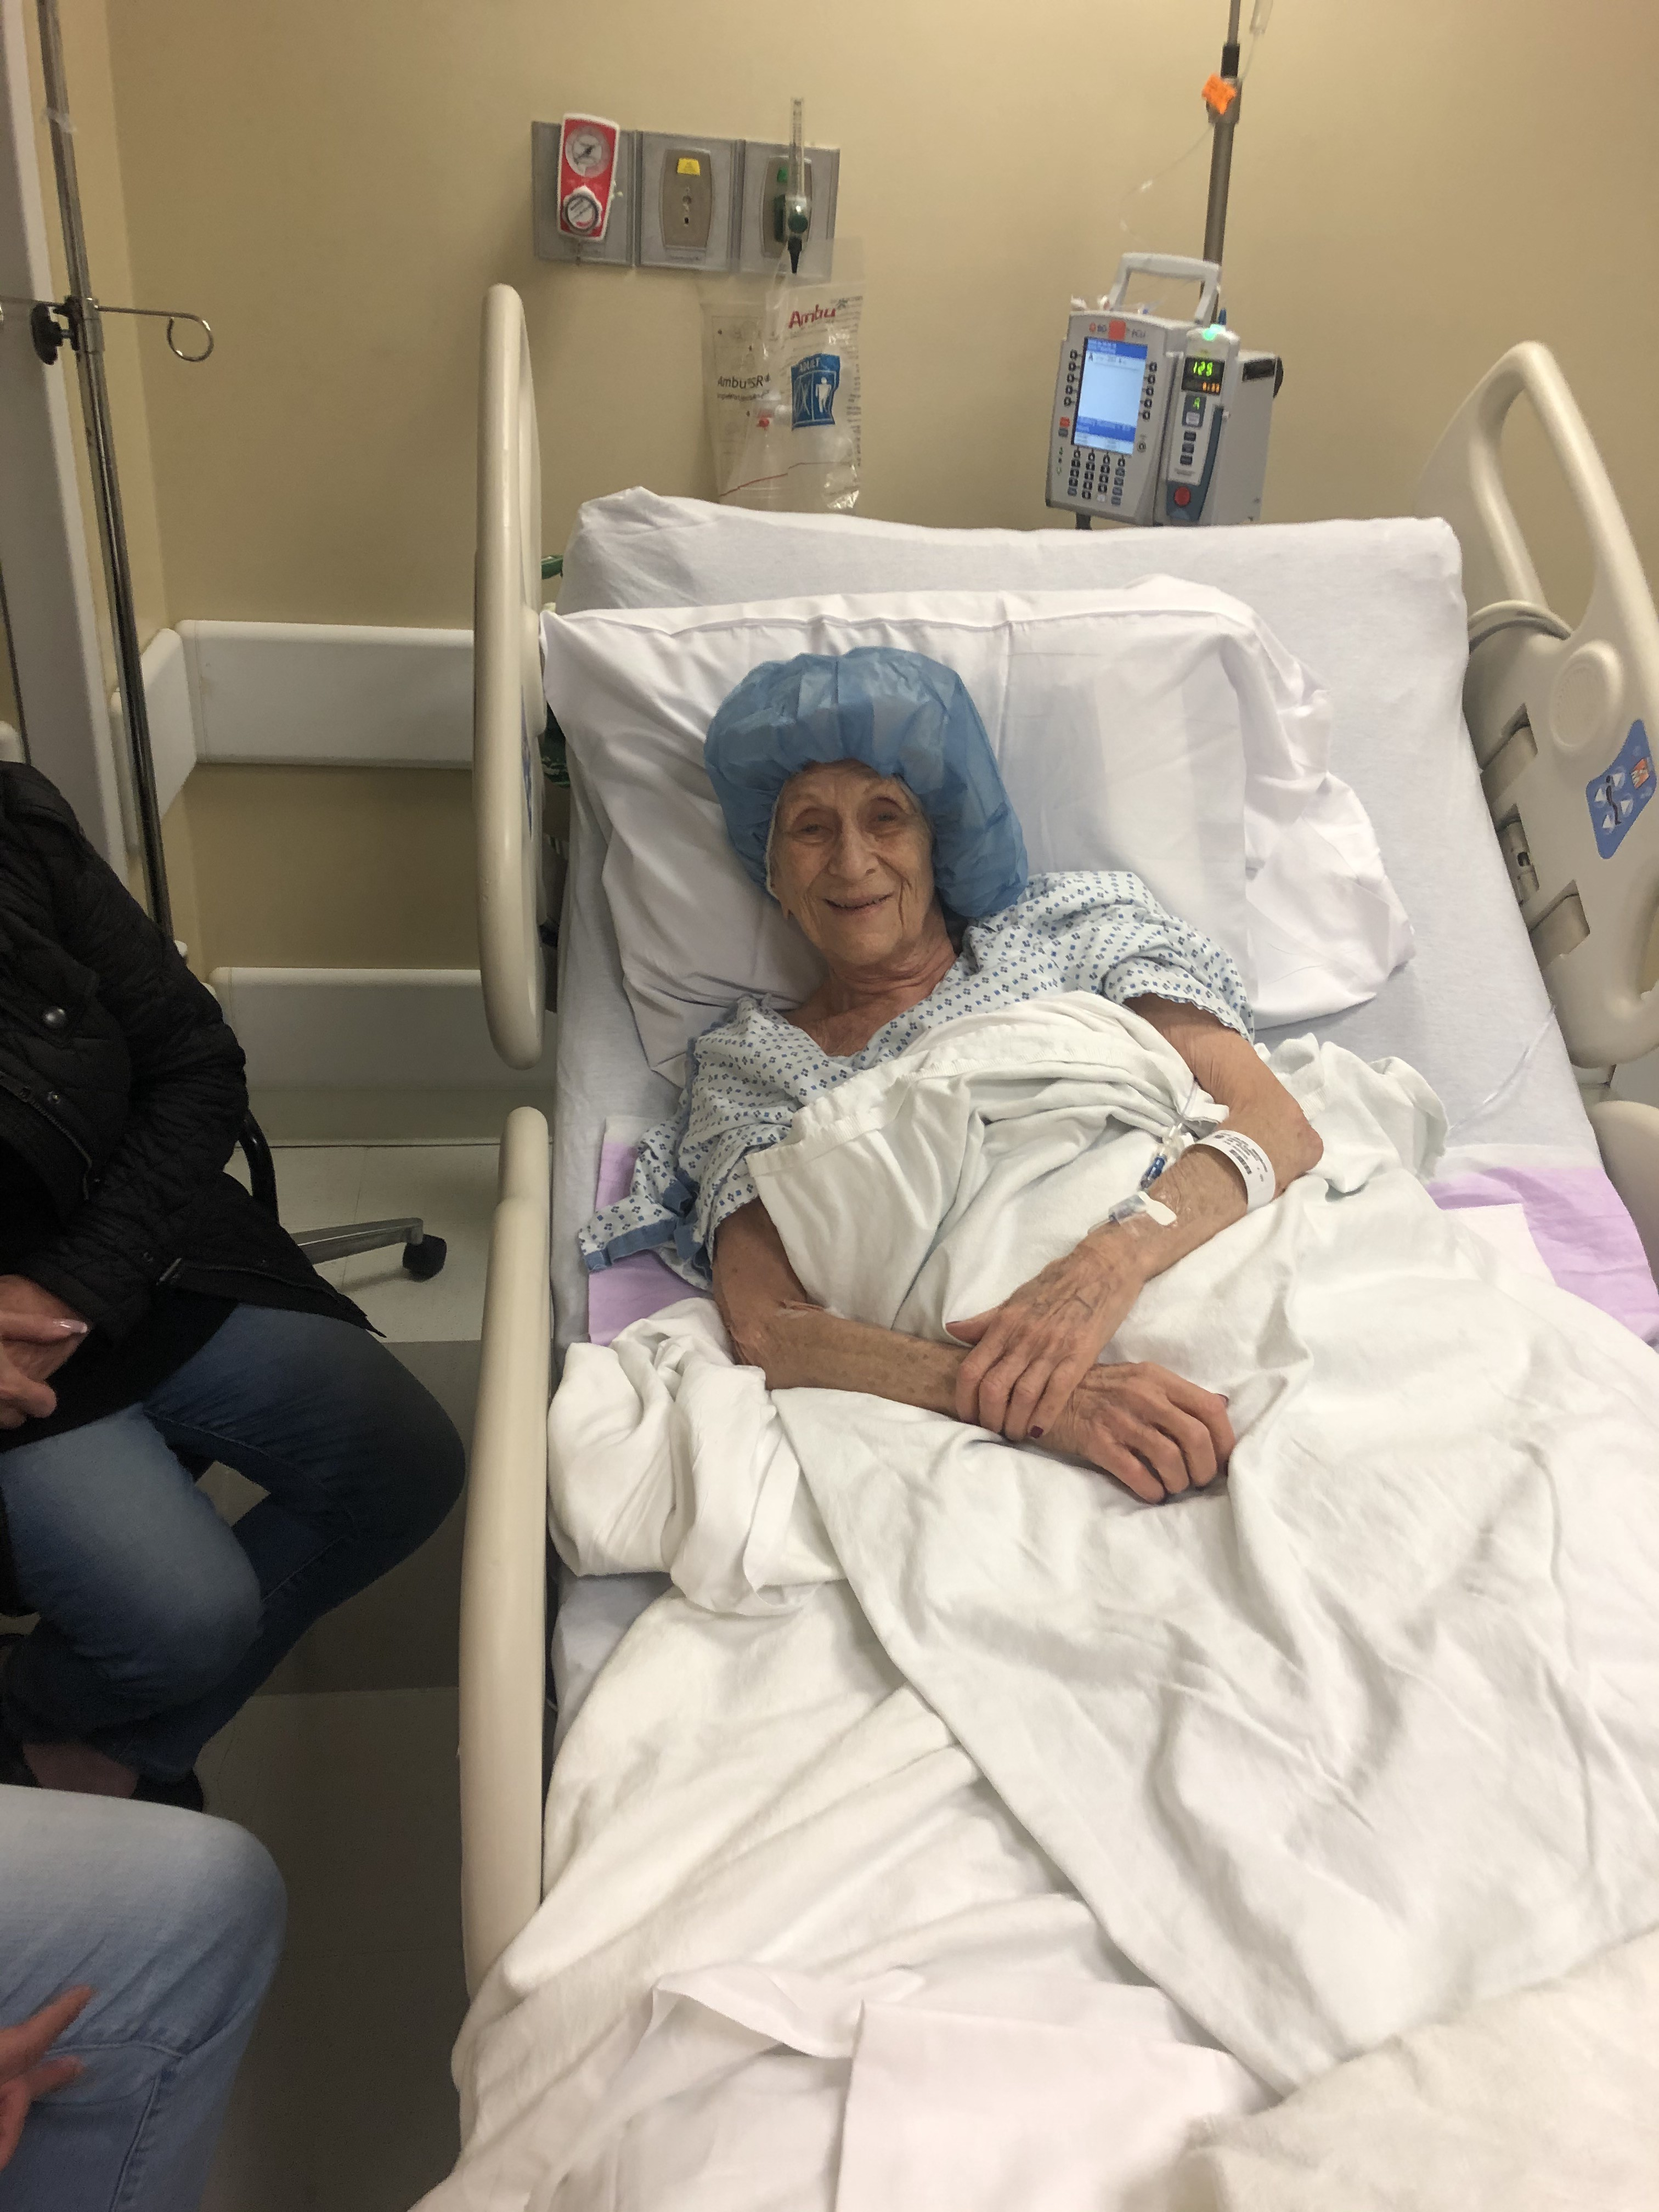 What My Grandma Harriet S Colon Cancer Can Teach Us About Humility By Jordan Gross P S I Love You